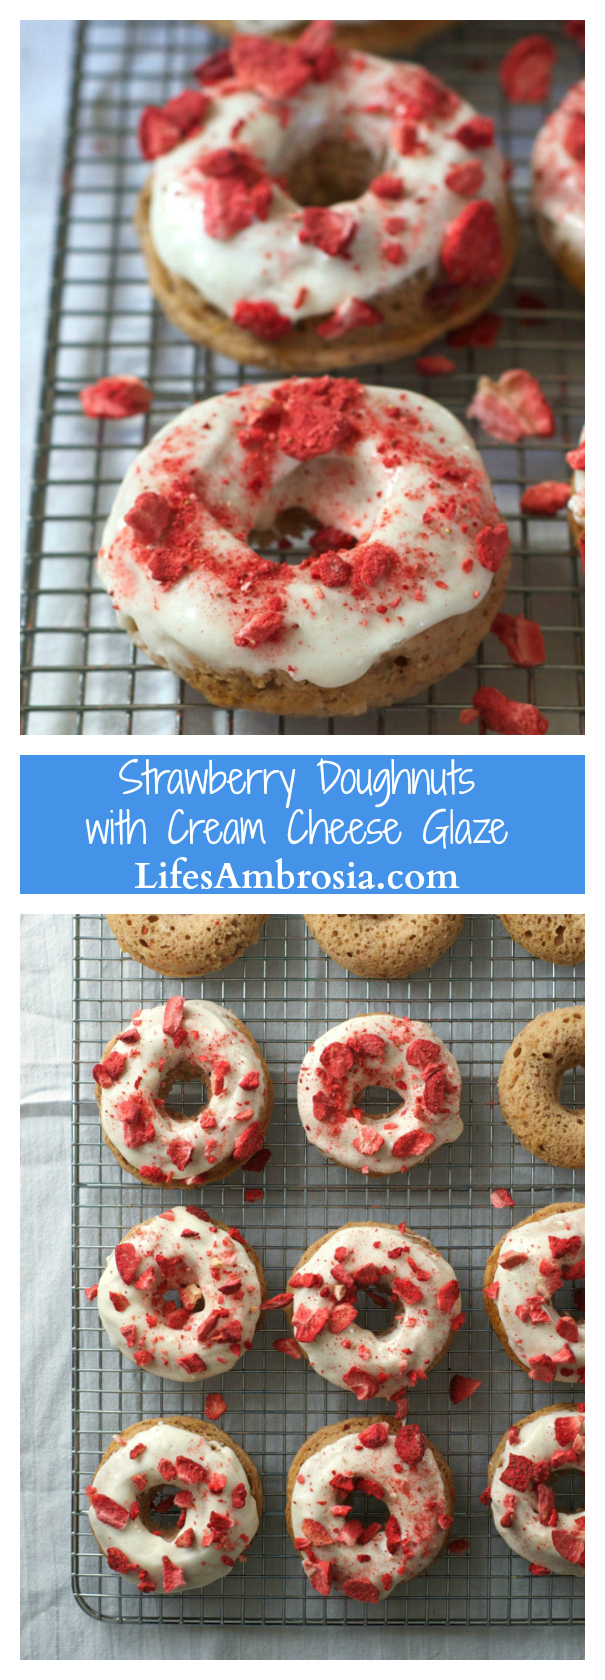 Baked strawberry doughnuts with cream cheese glaze are the perfect sweet treat to start your day!